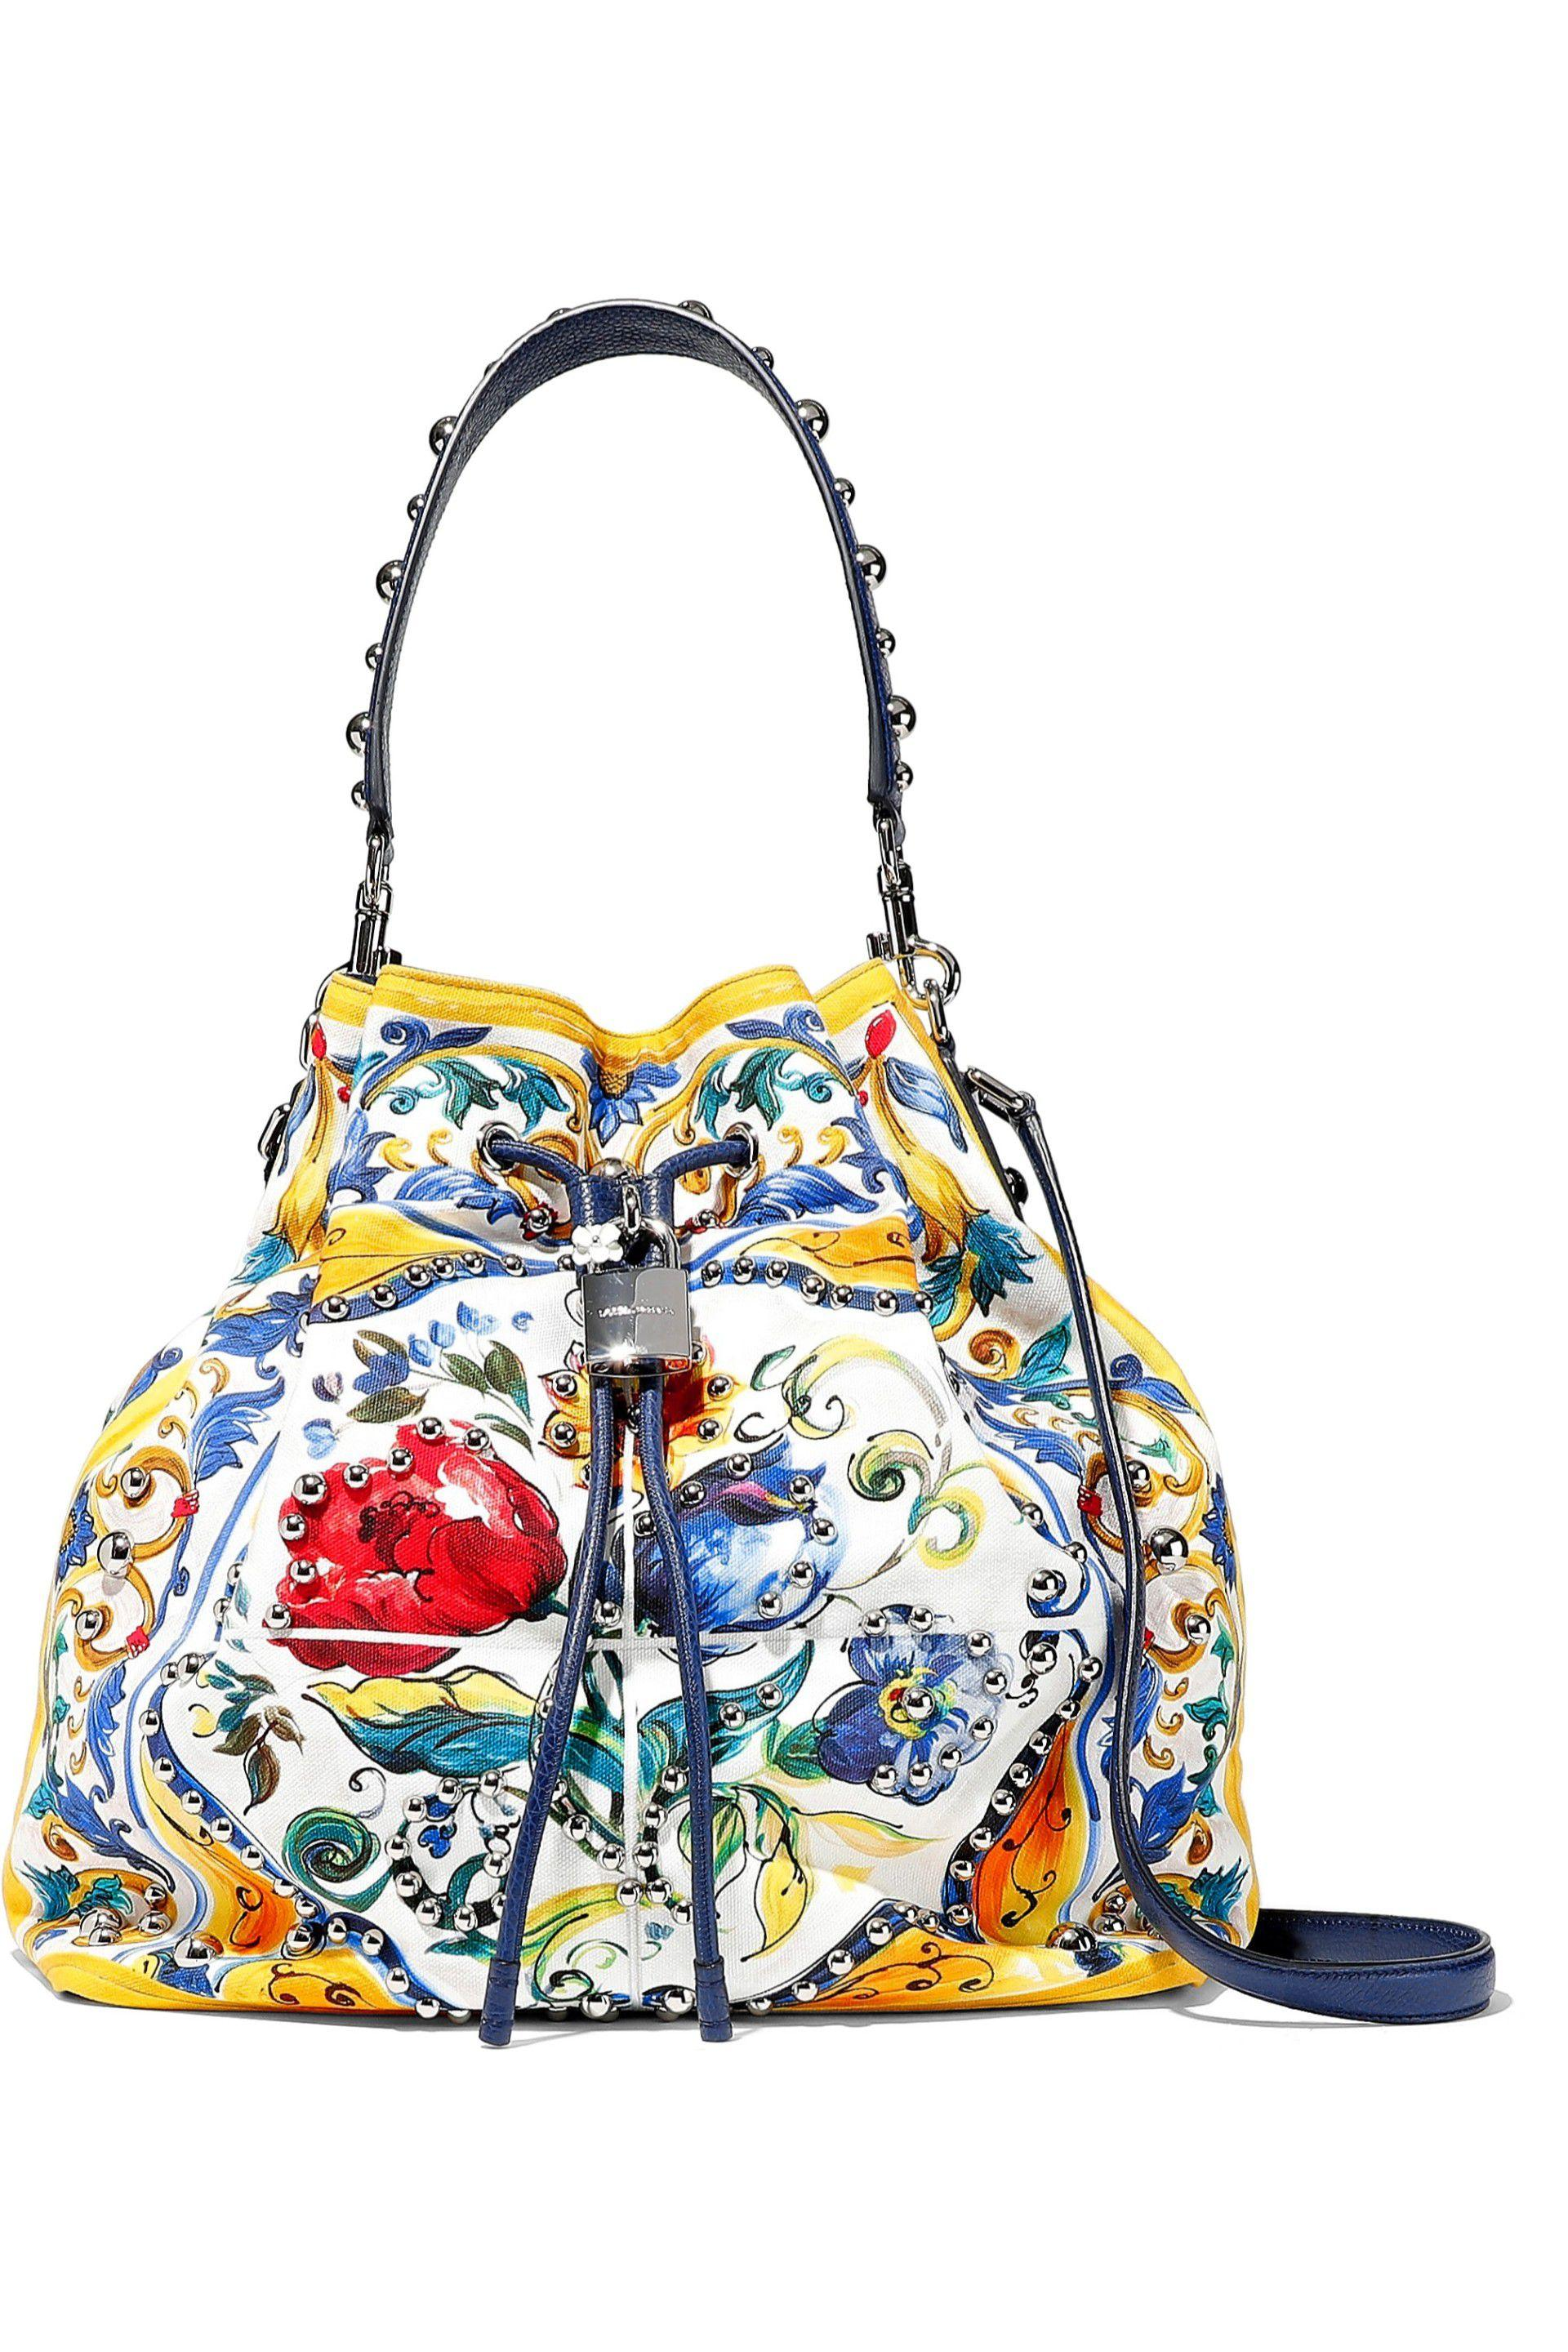 c78a5a4bb0c1 Lyst - Dolce   Gabbana Woman Embellished Floral-print Canvas Bucket ...